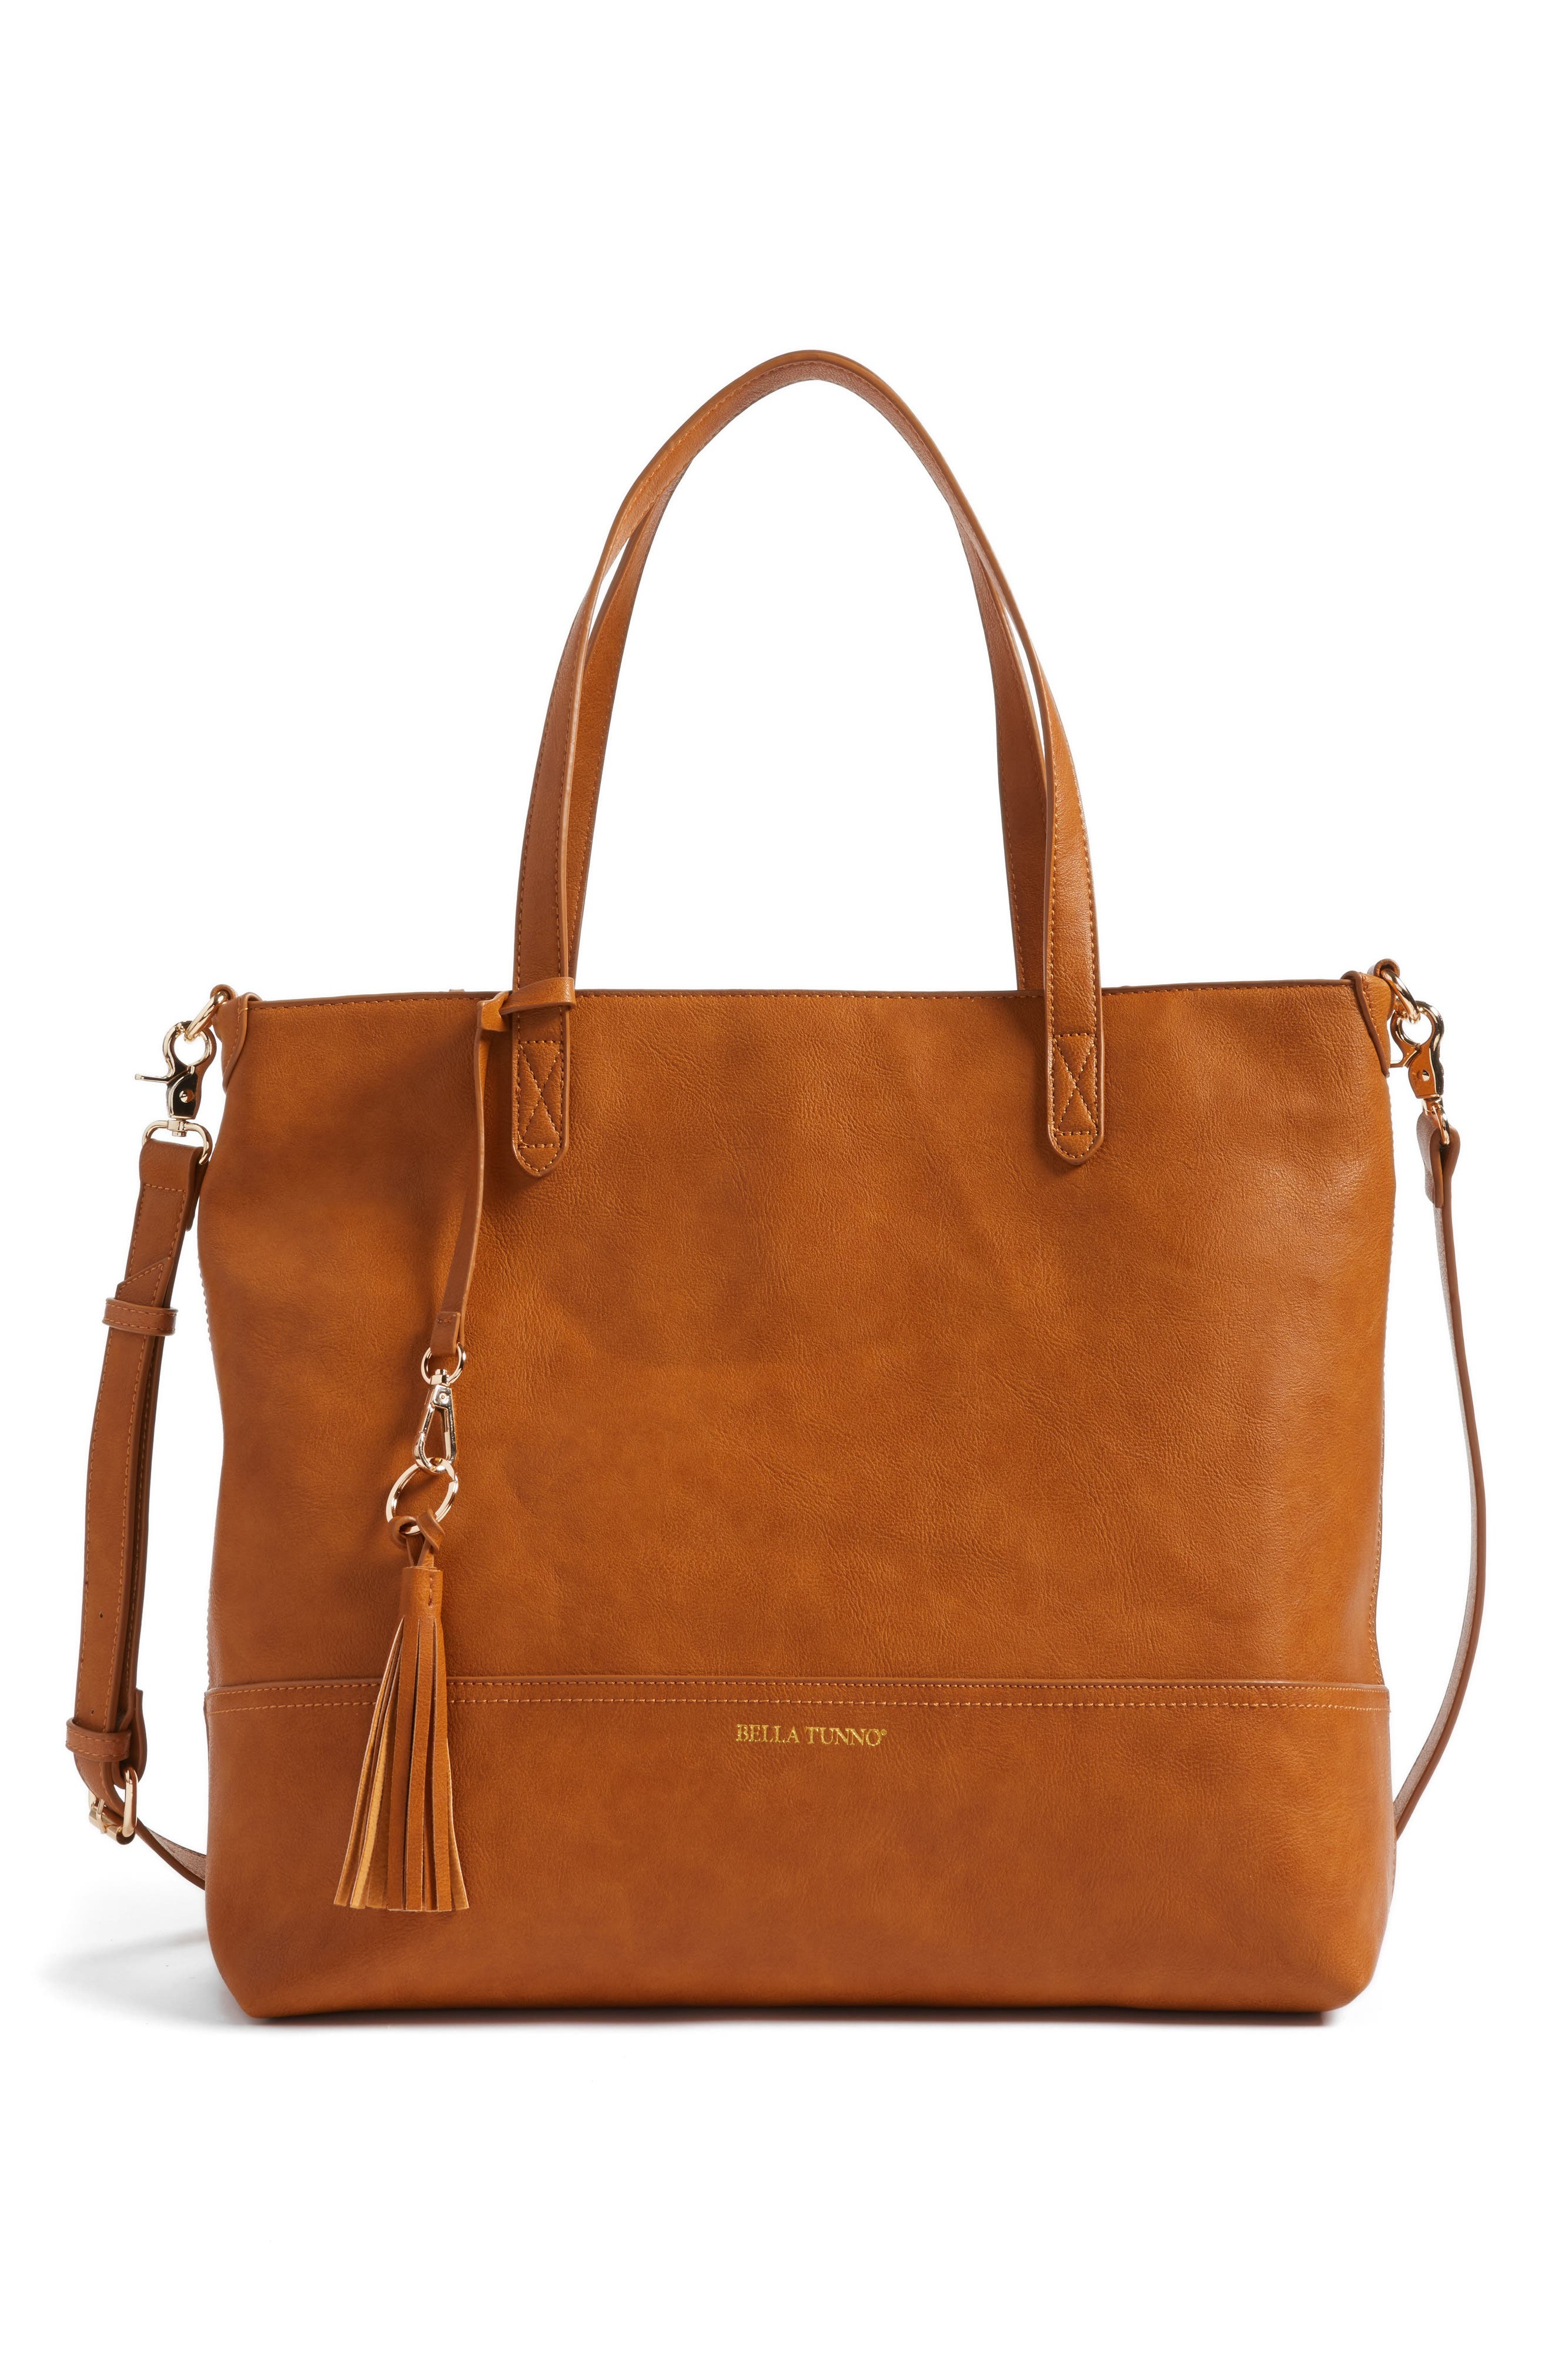 Main Image - Bella Tunno Boss Faux Leather Diaper Bag & Clutch